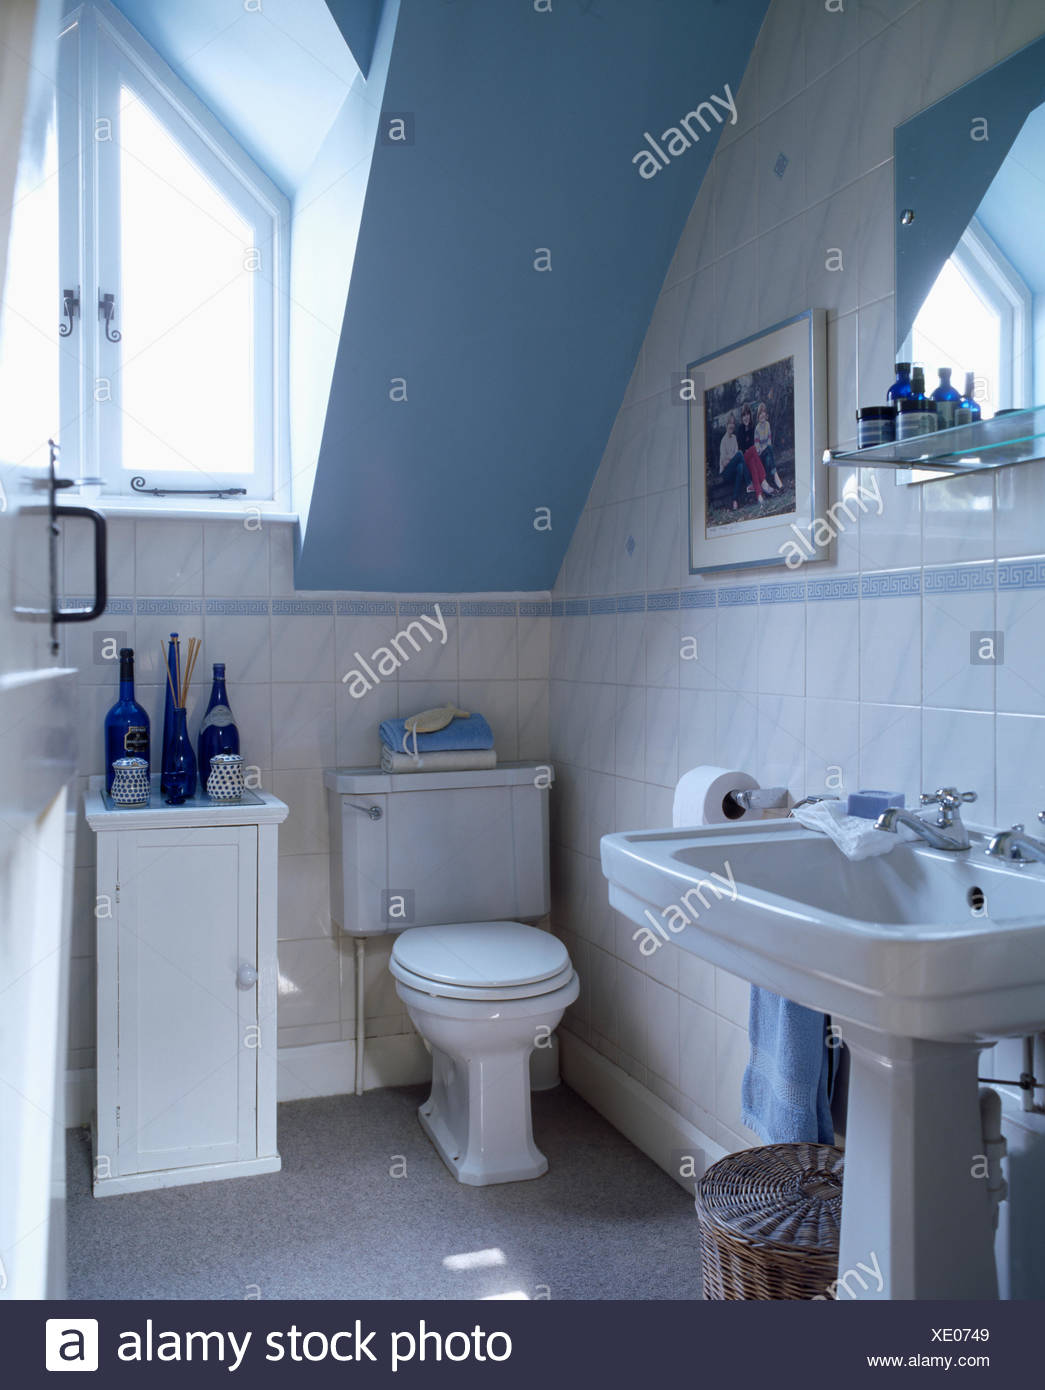 white pedestal basin and toilet in blue attic bathroom with small